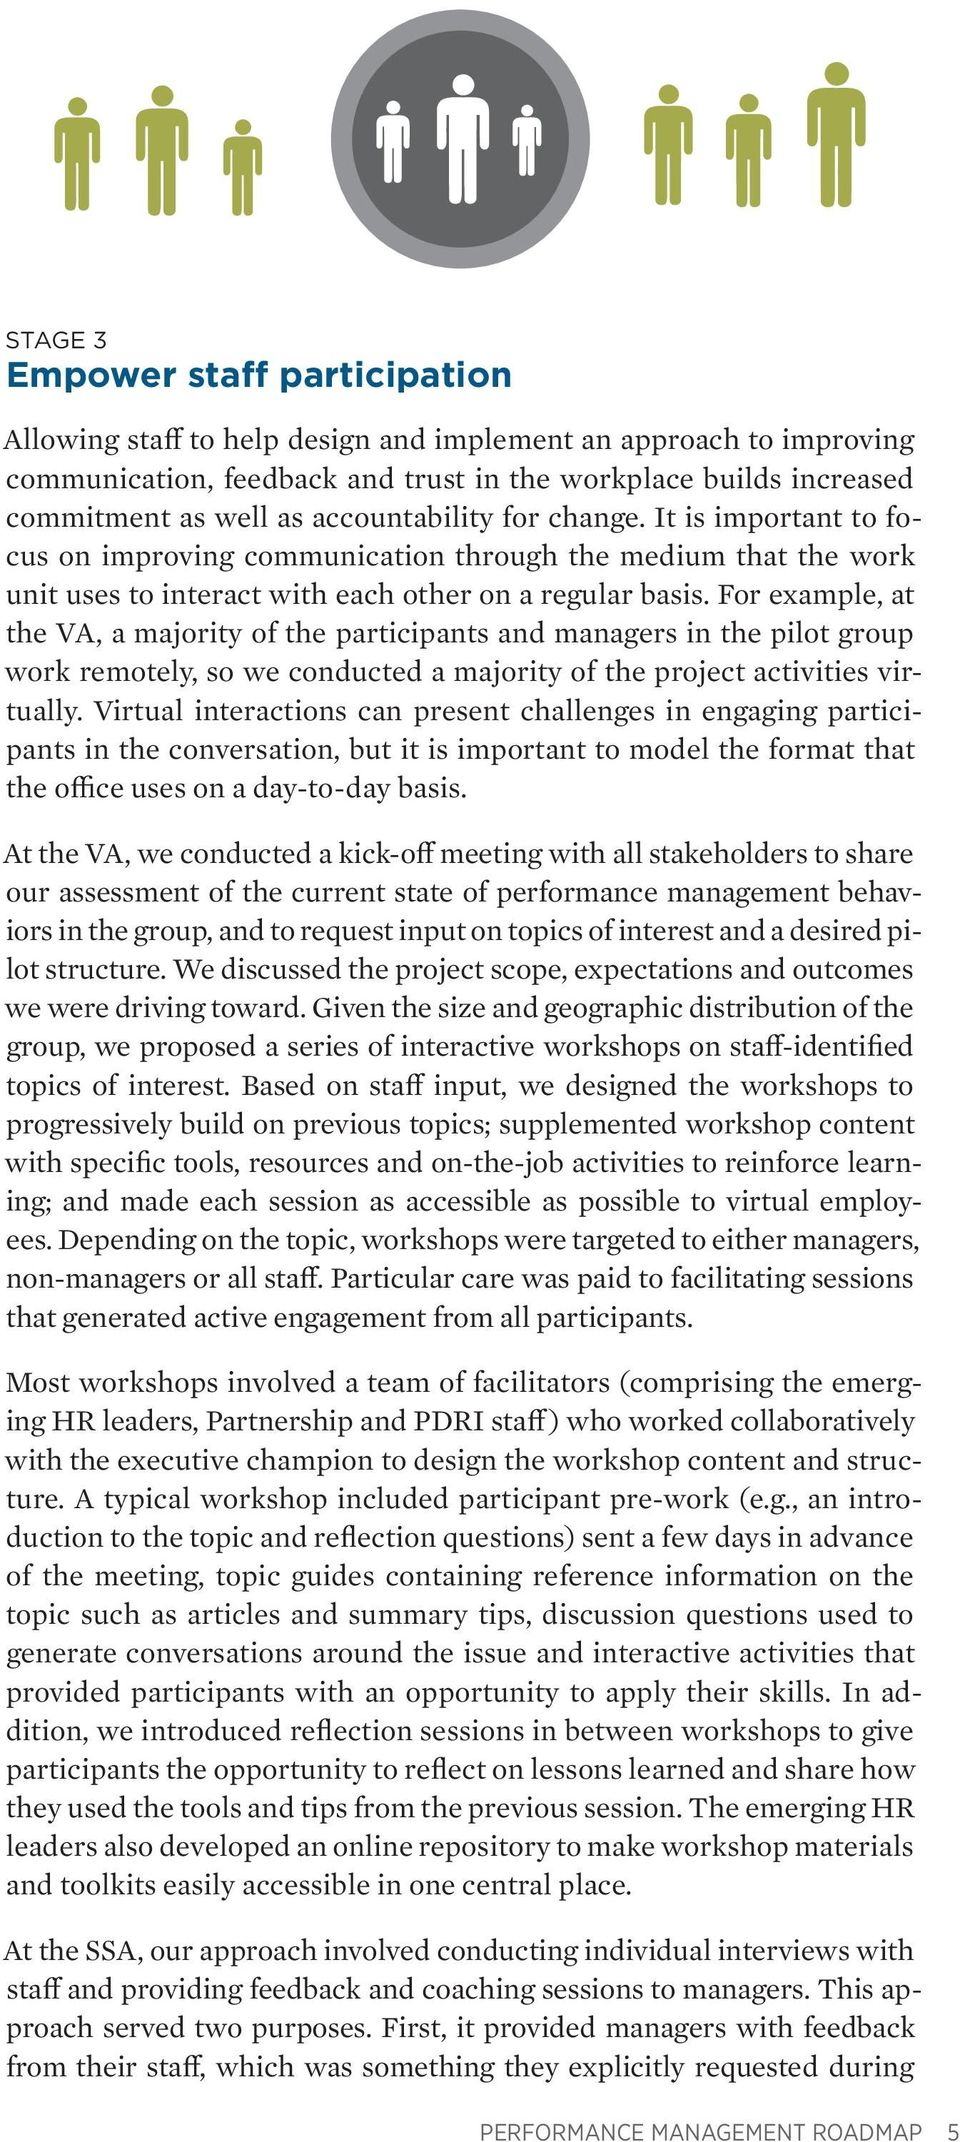 For example, at the VA, a majority of the participants and managers in the pilot group work remotely, so we conducted a majority of the project activities virtually.